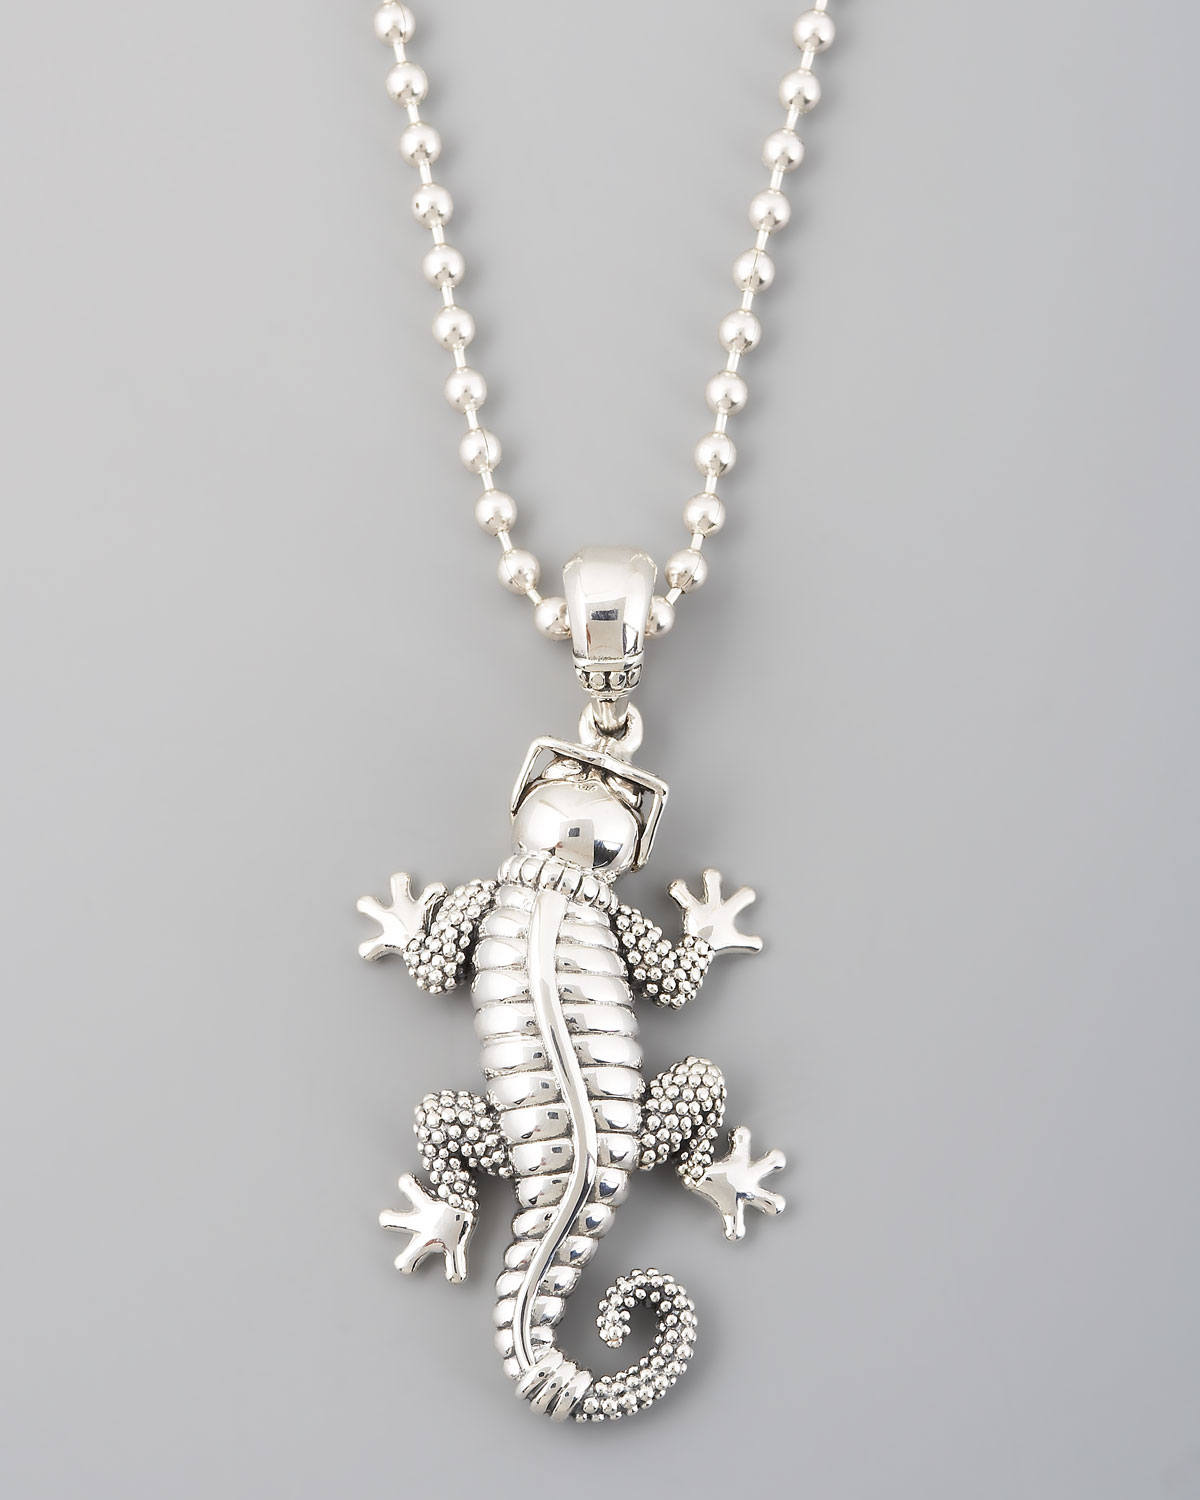 Lyst lagos rare wonders gecko pendant necklace in metallic gallery mozeypictures Images